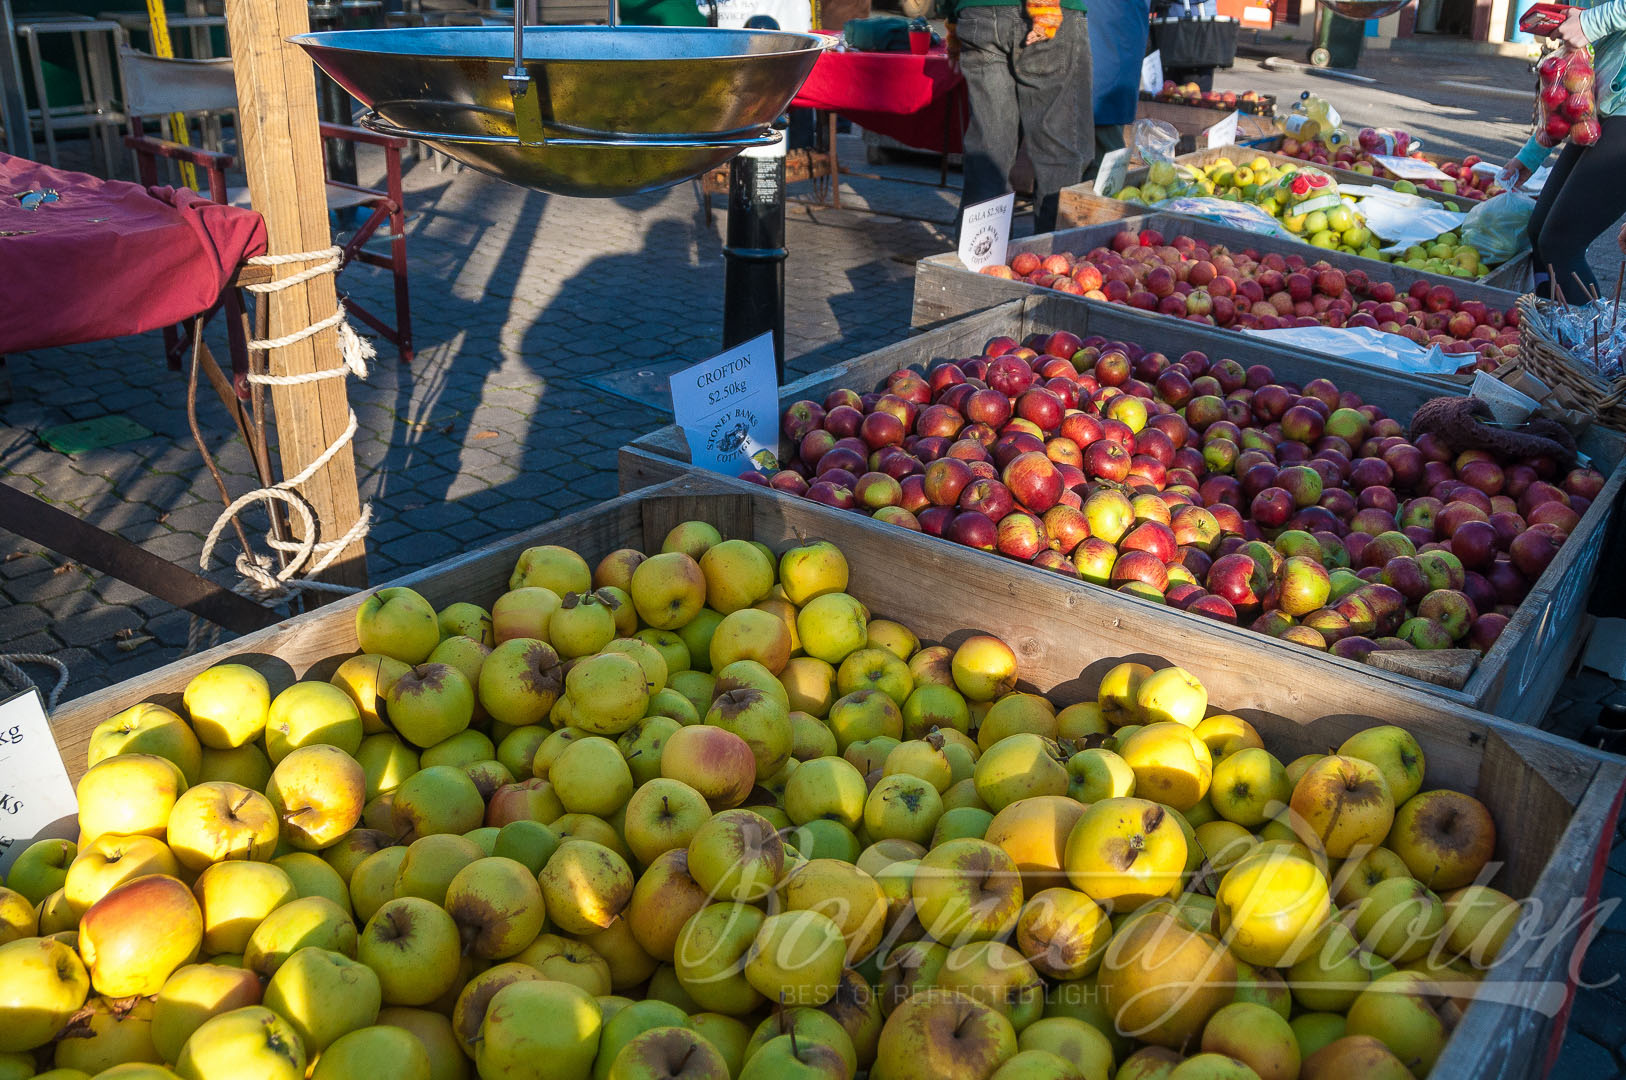 Chilled apples at the Salamanca Market